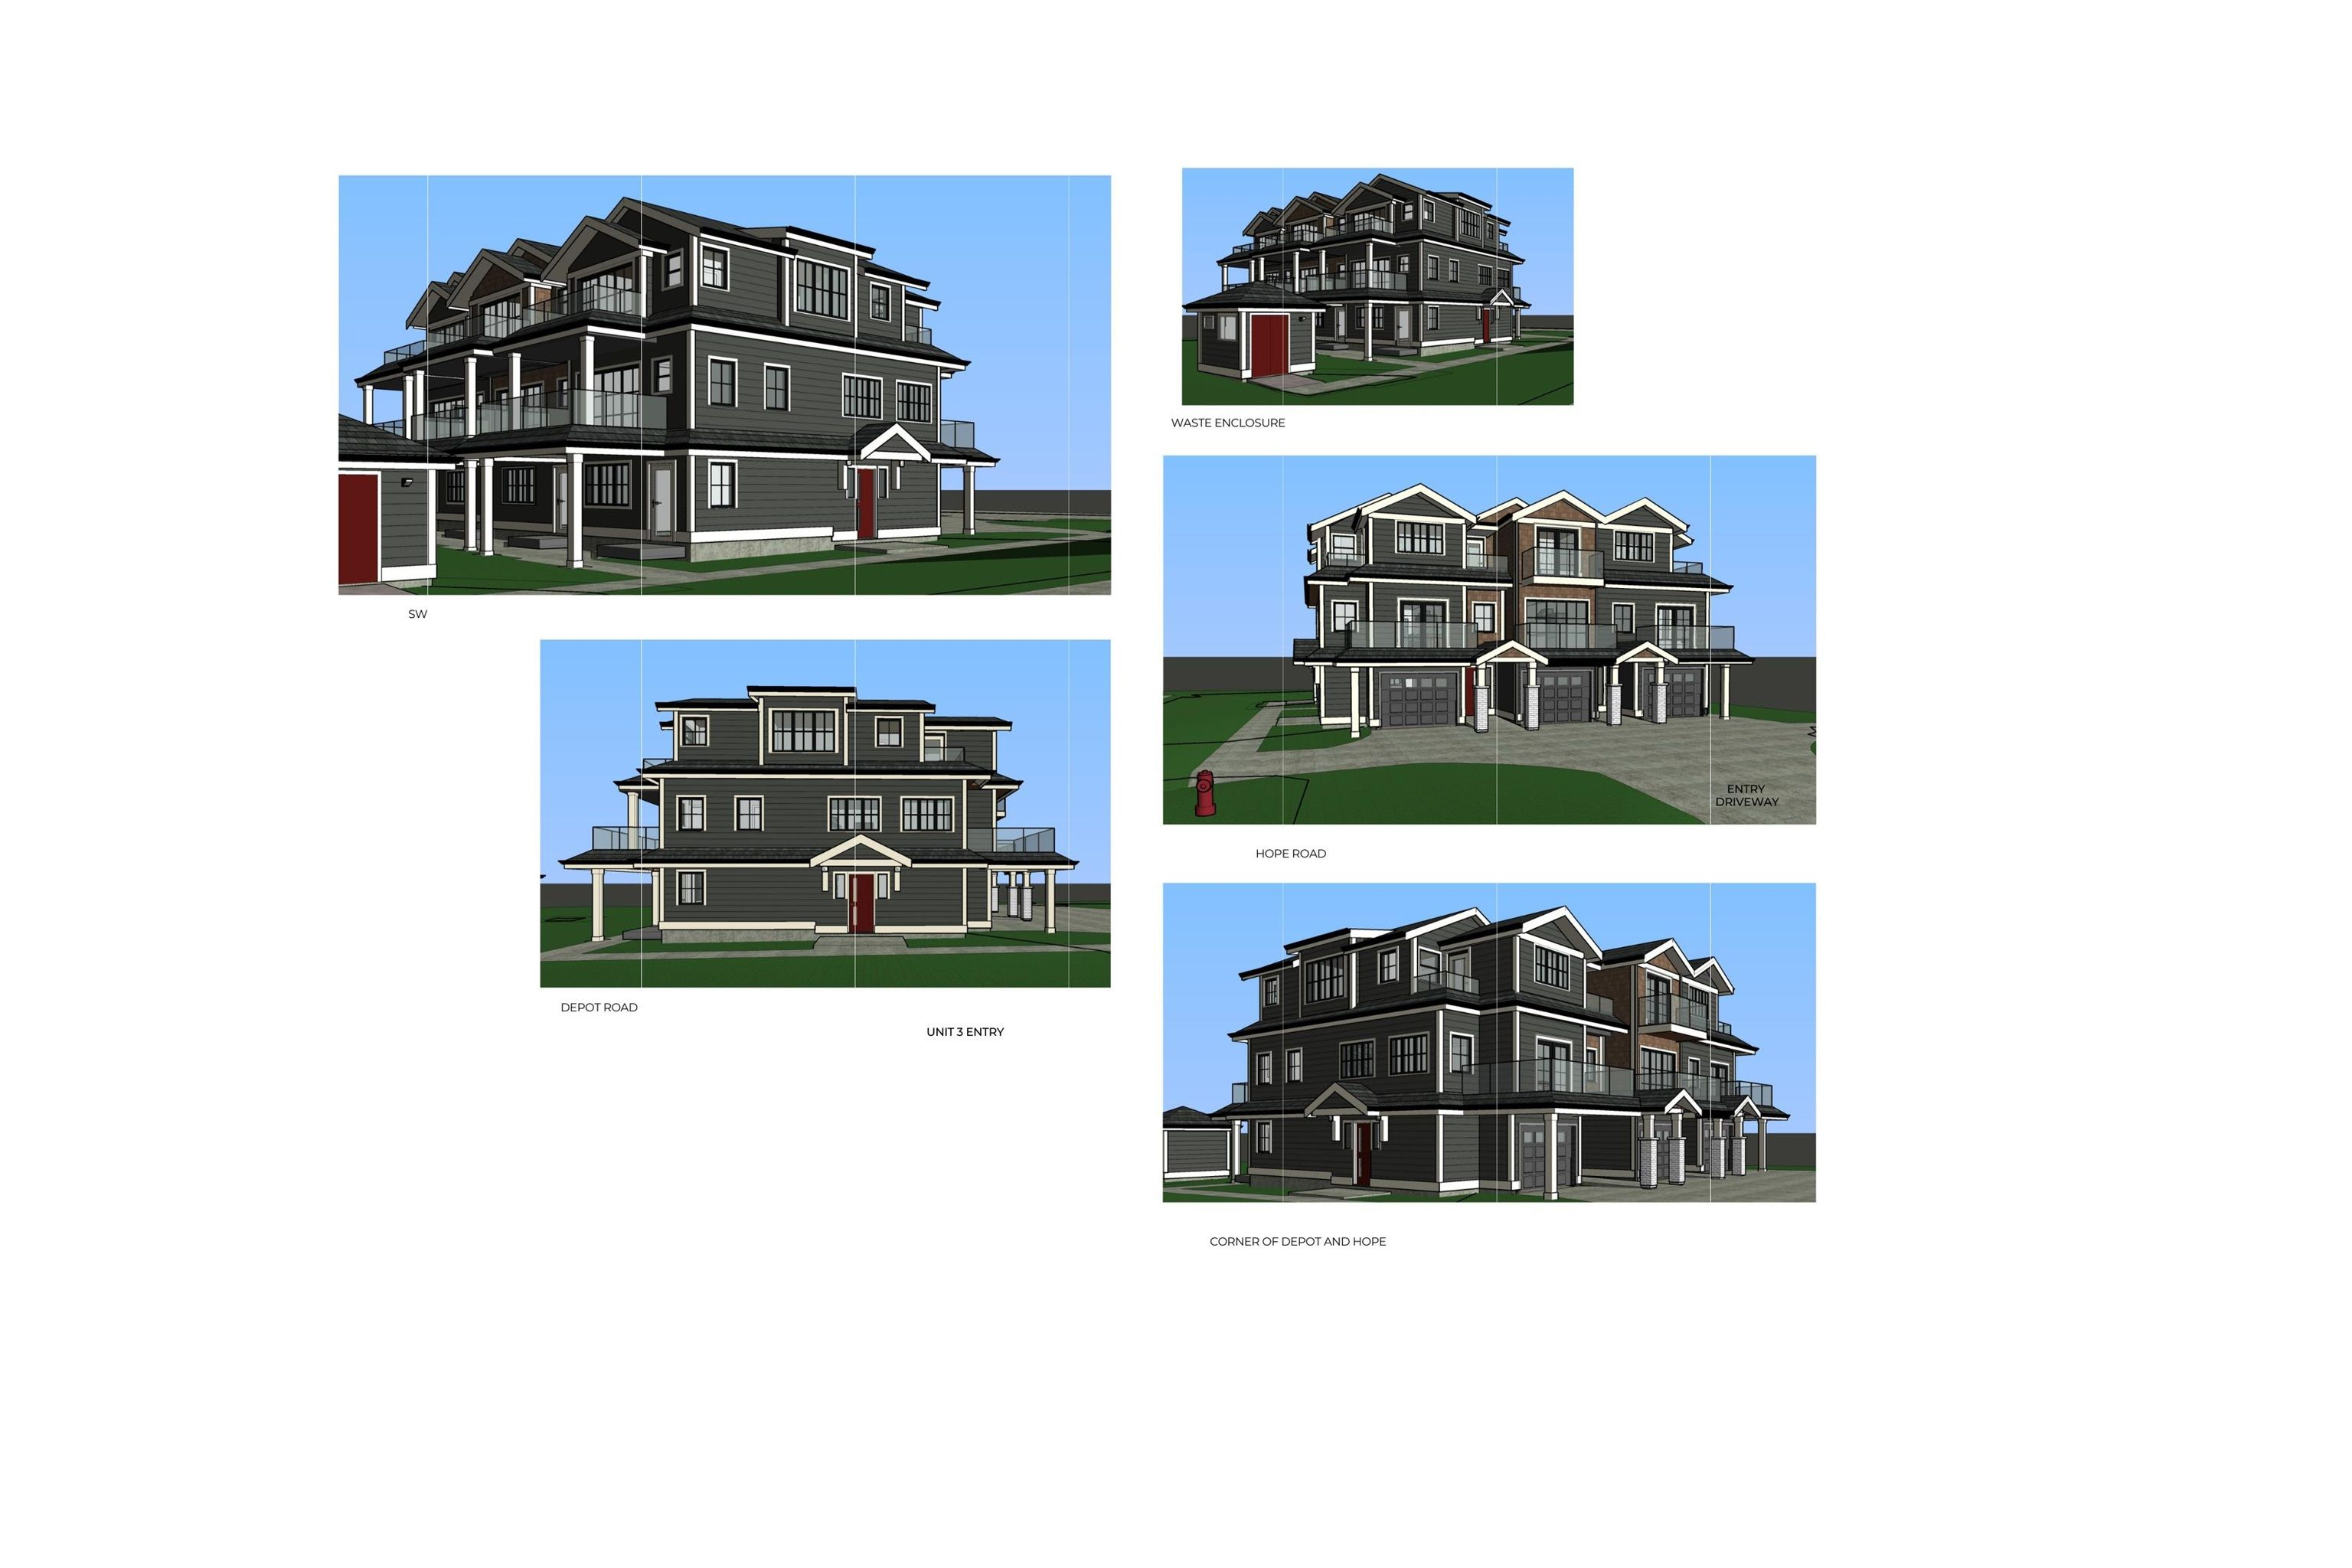 """Main Photo: 3 41811 HOPE Road in Squamish: Brackendale Condo for sale in """"BRACKENDALE"""" : MLS®# R2612811"""